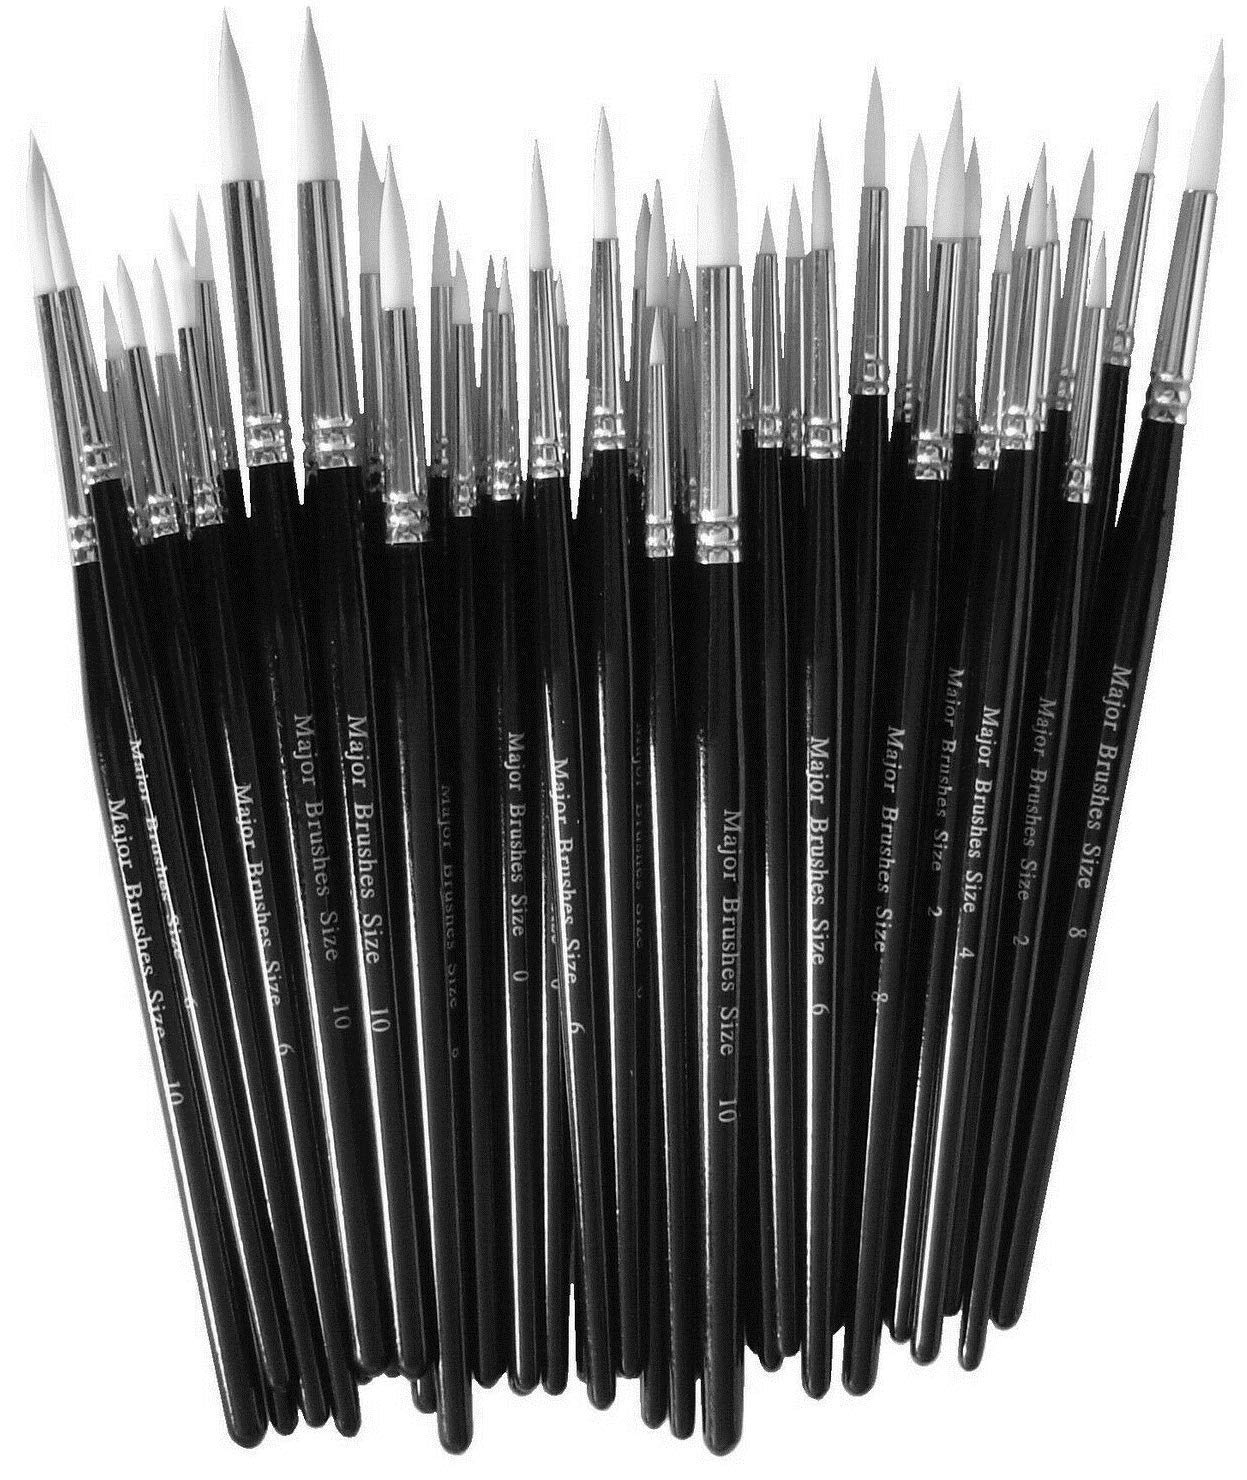 Paint brushes MAJOR OIL//ACRYLIC PAINTS NEW packs of 10 Major Brush No 6